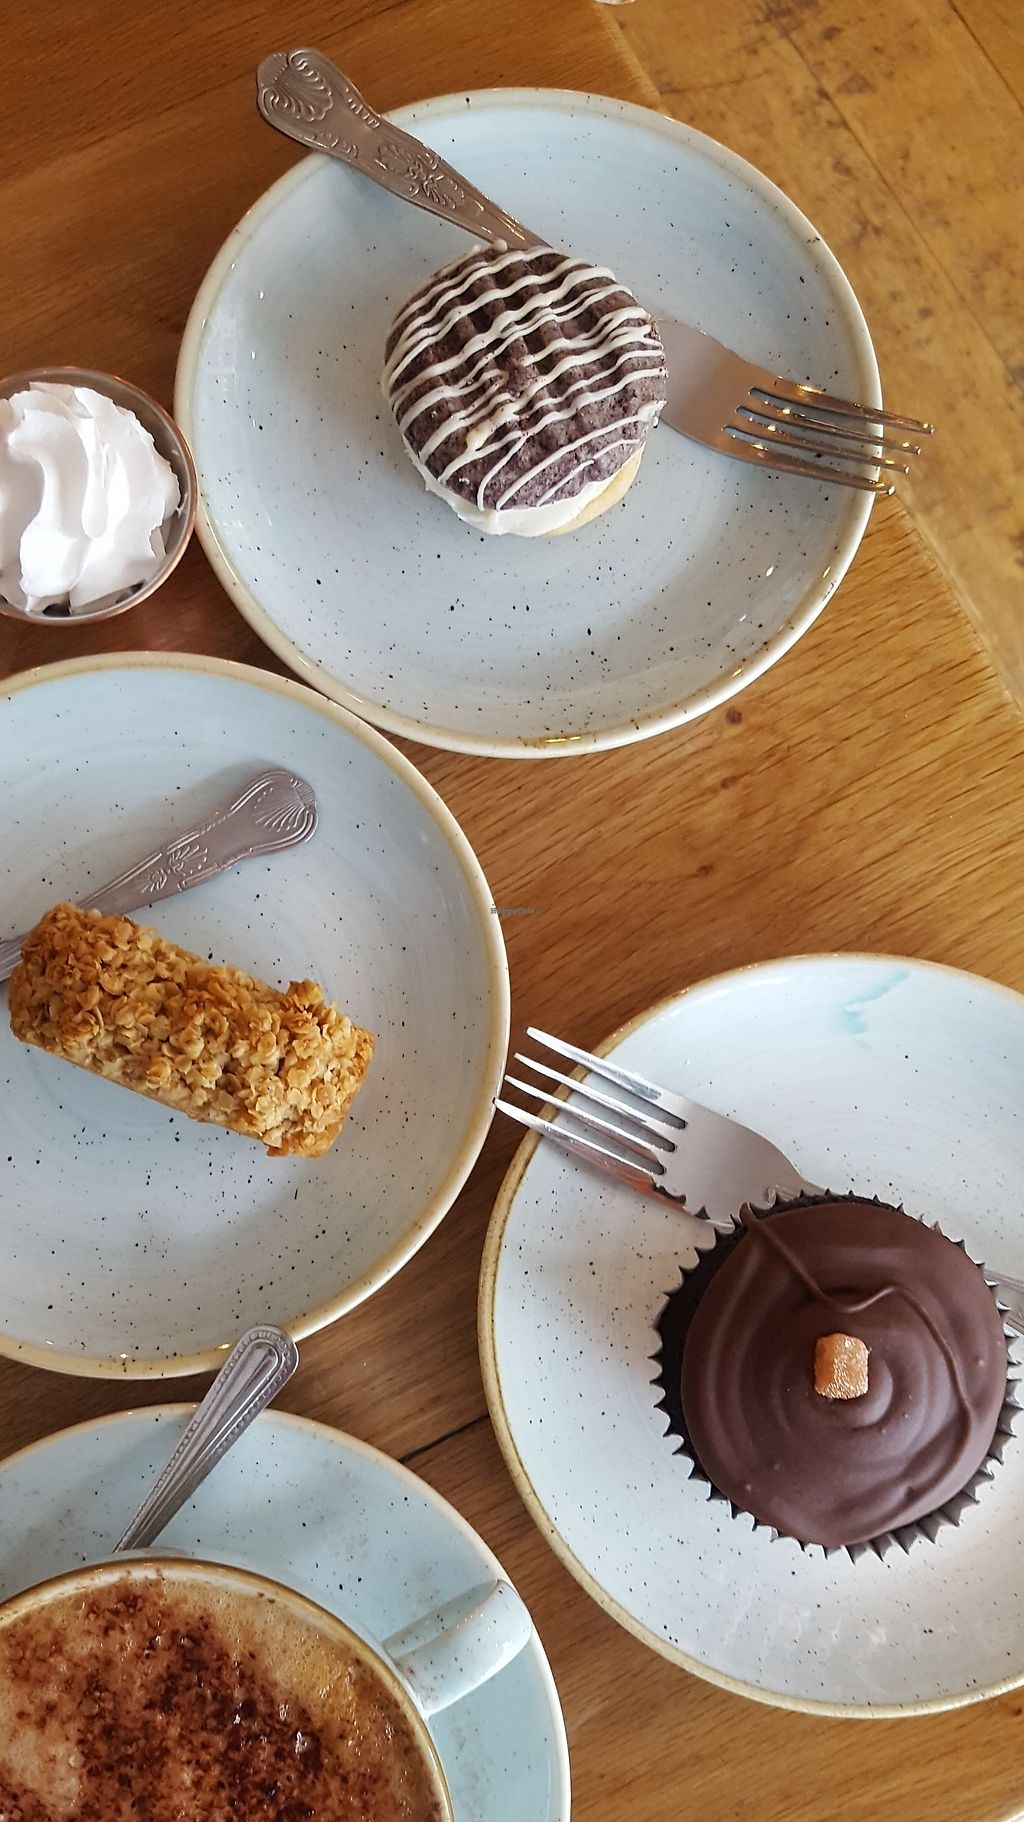 """Photo of The Copper Spoon  by <a href=""""/members/profile/VeganAnnaS"""">VeganAnnaS</a> <br/>Vegan cakes - blueberry biscuit sandwich / flapjack / chocolate and ginger cupcake <br/> October 14, 2017  - <a href='/contact/abuse/image/102406/315175'>Report</a>"""